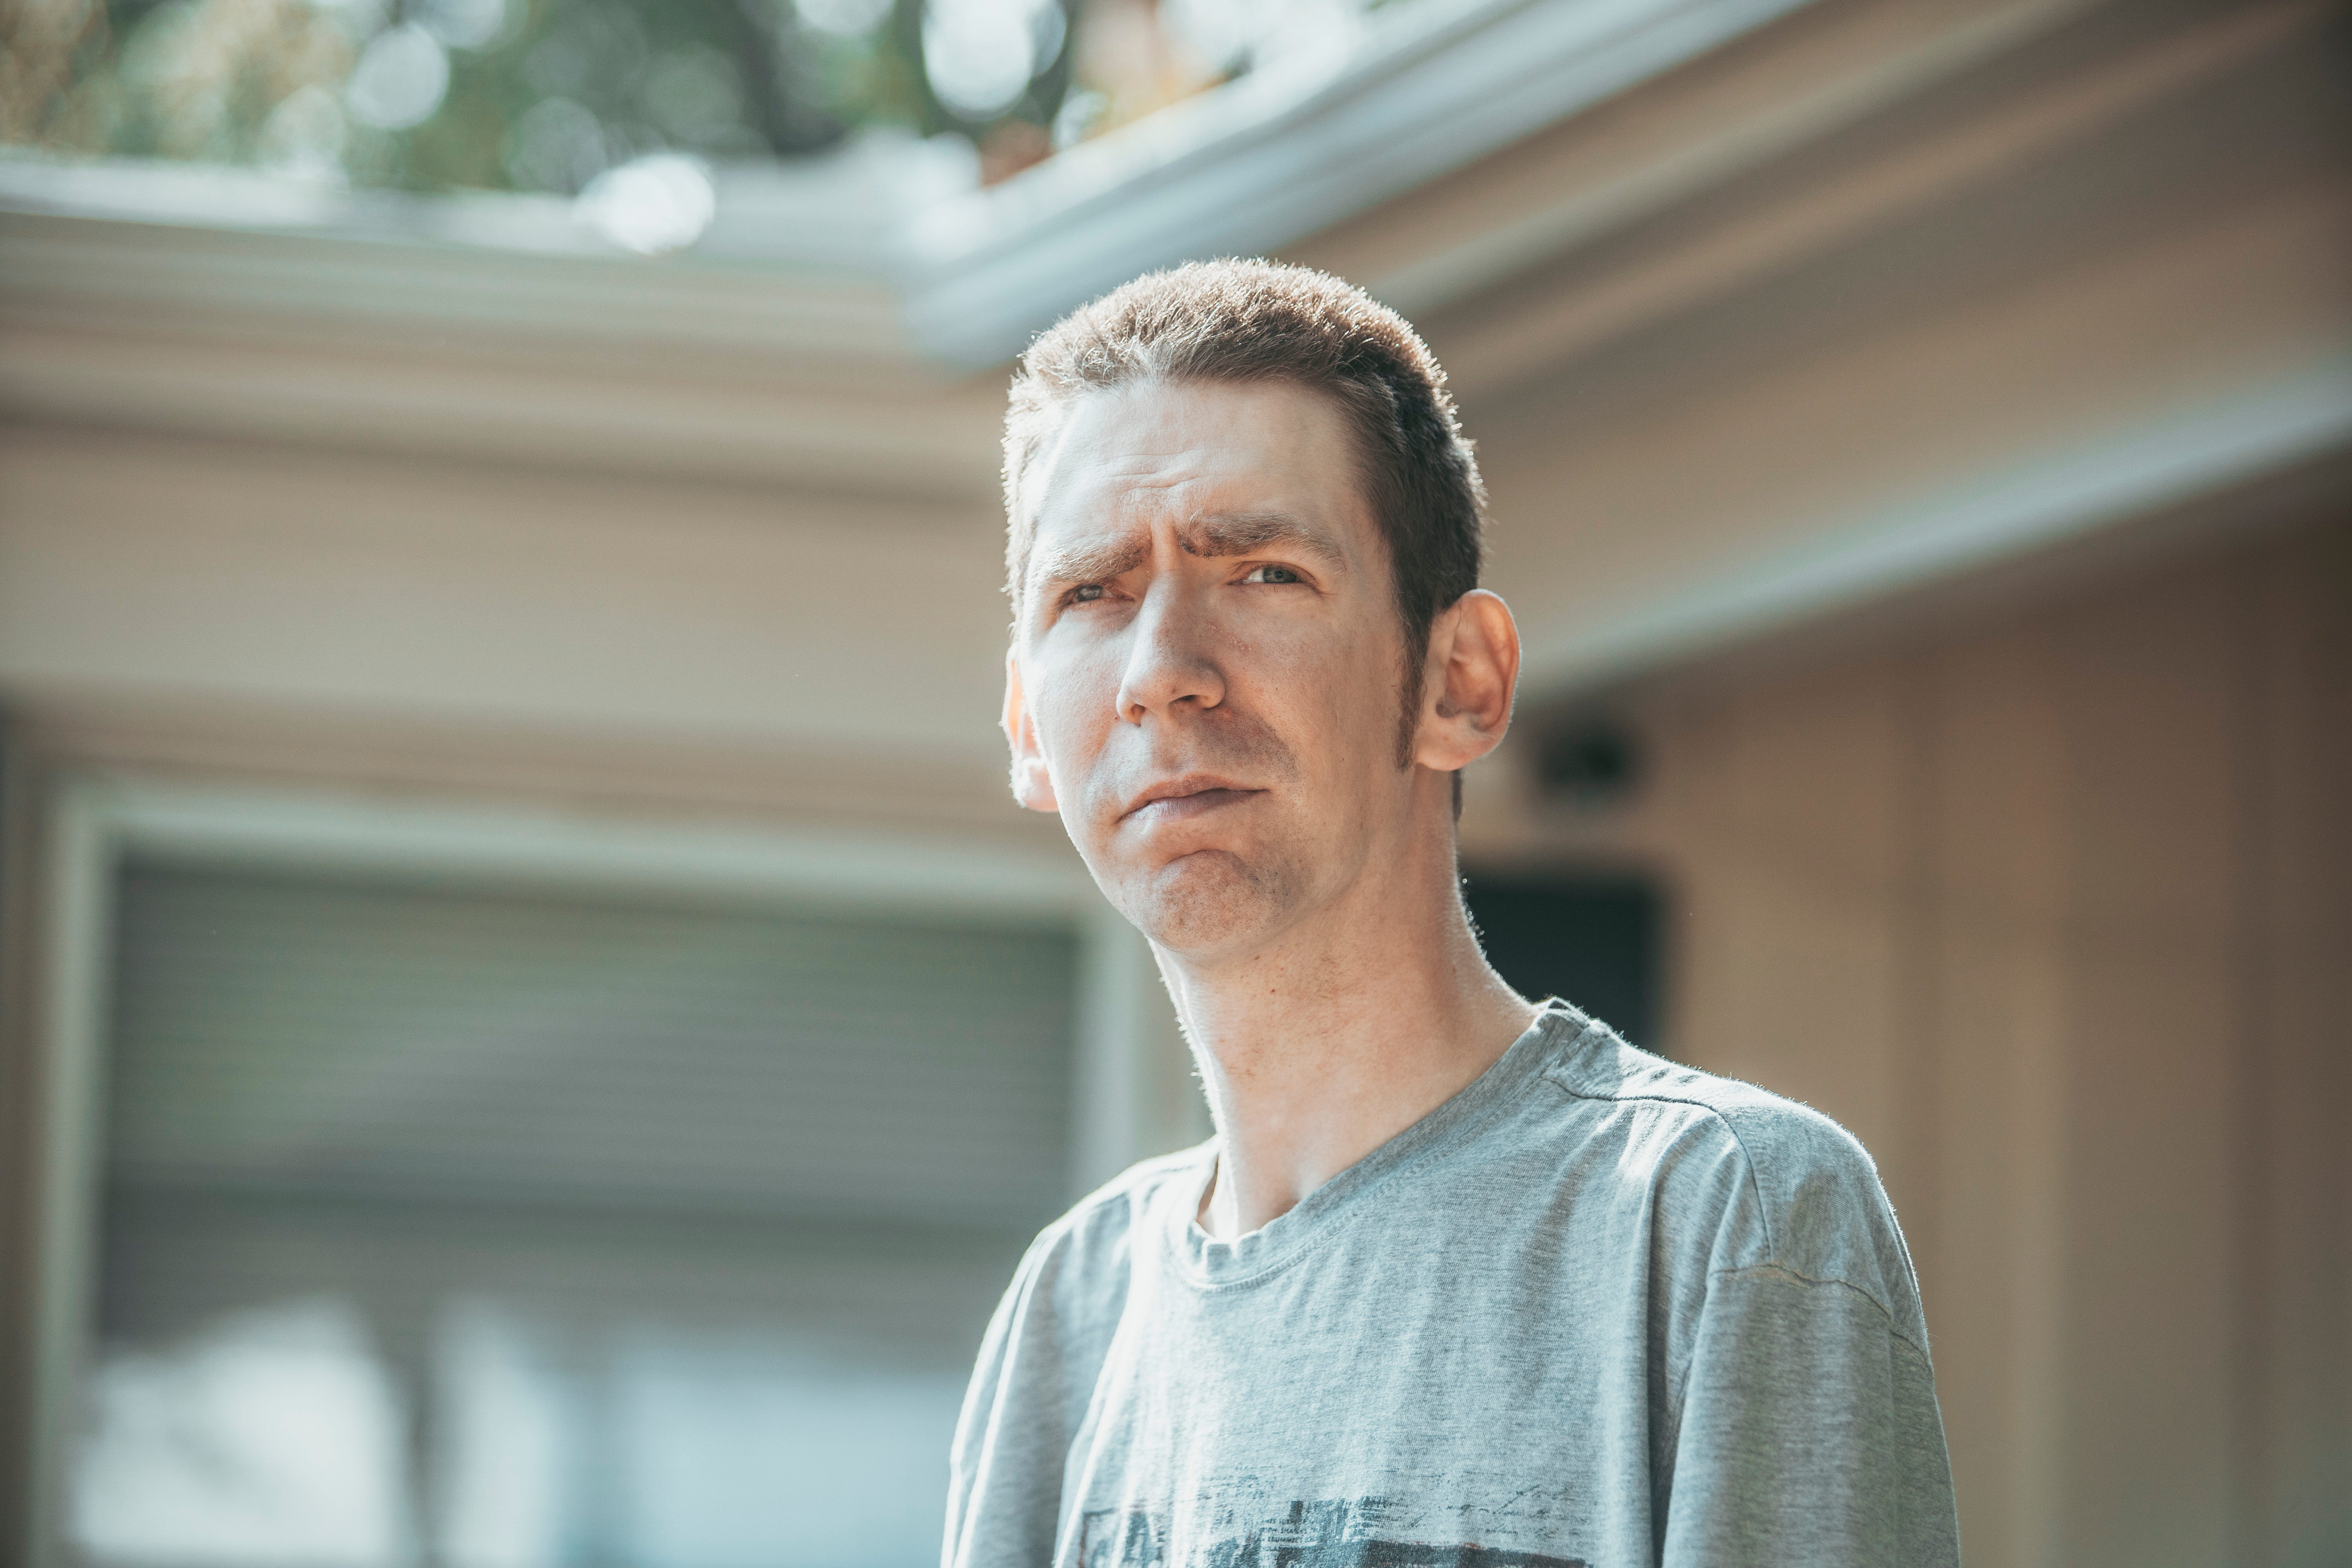 A prisoner shattered Darrell Adams' eye socket, cheek and jaw in a beating in April 2019. Adams has since left his job at Marshall County Correctional Facility.